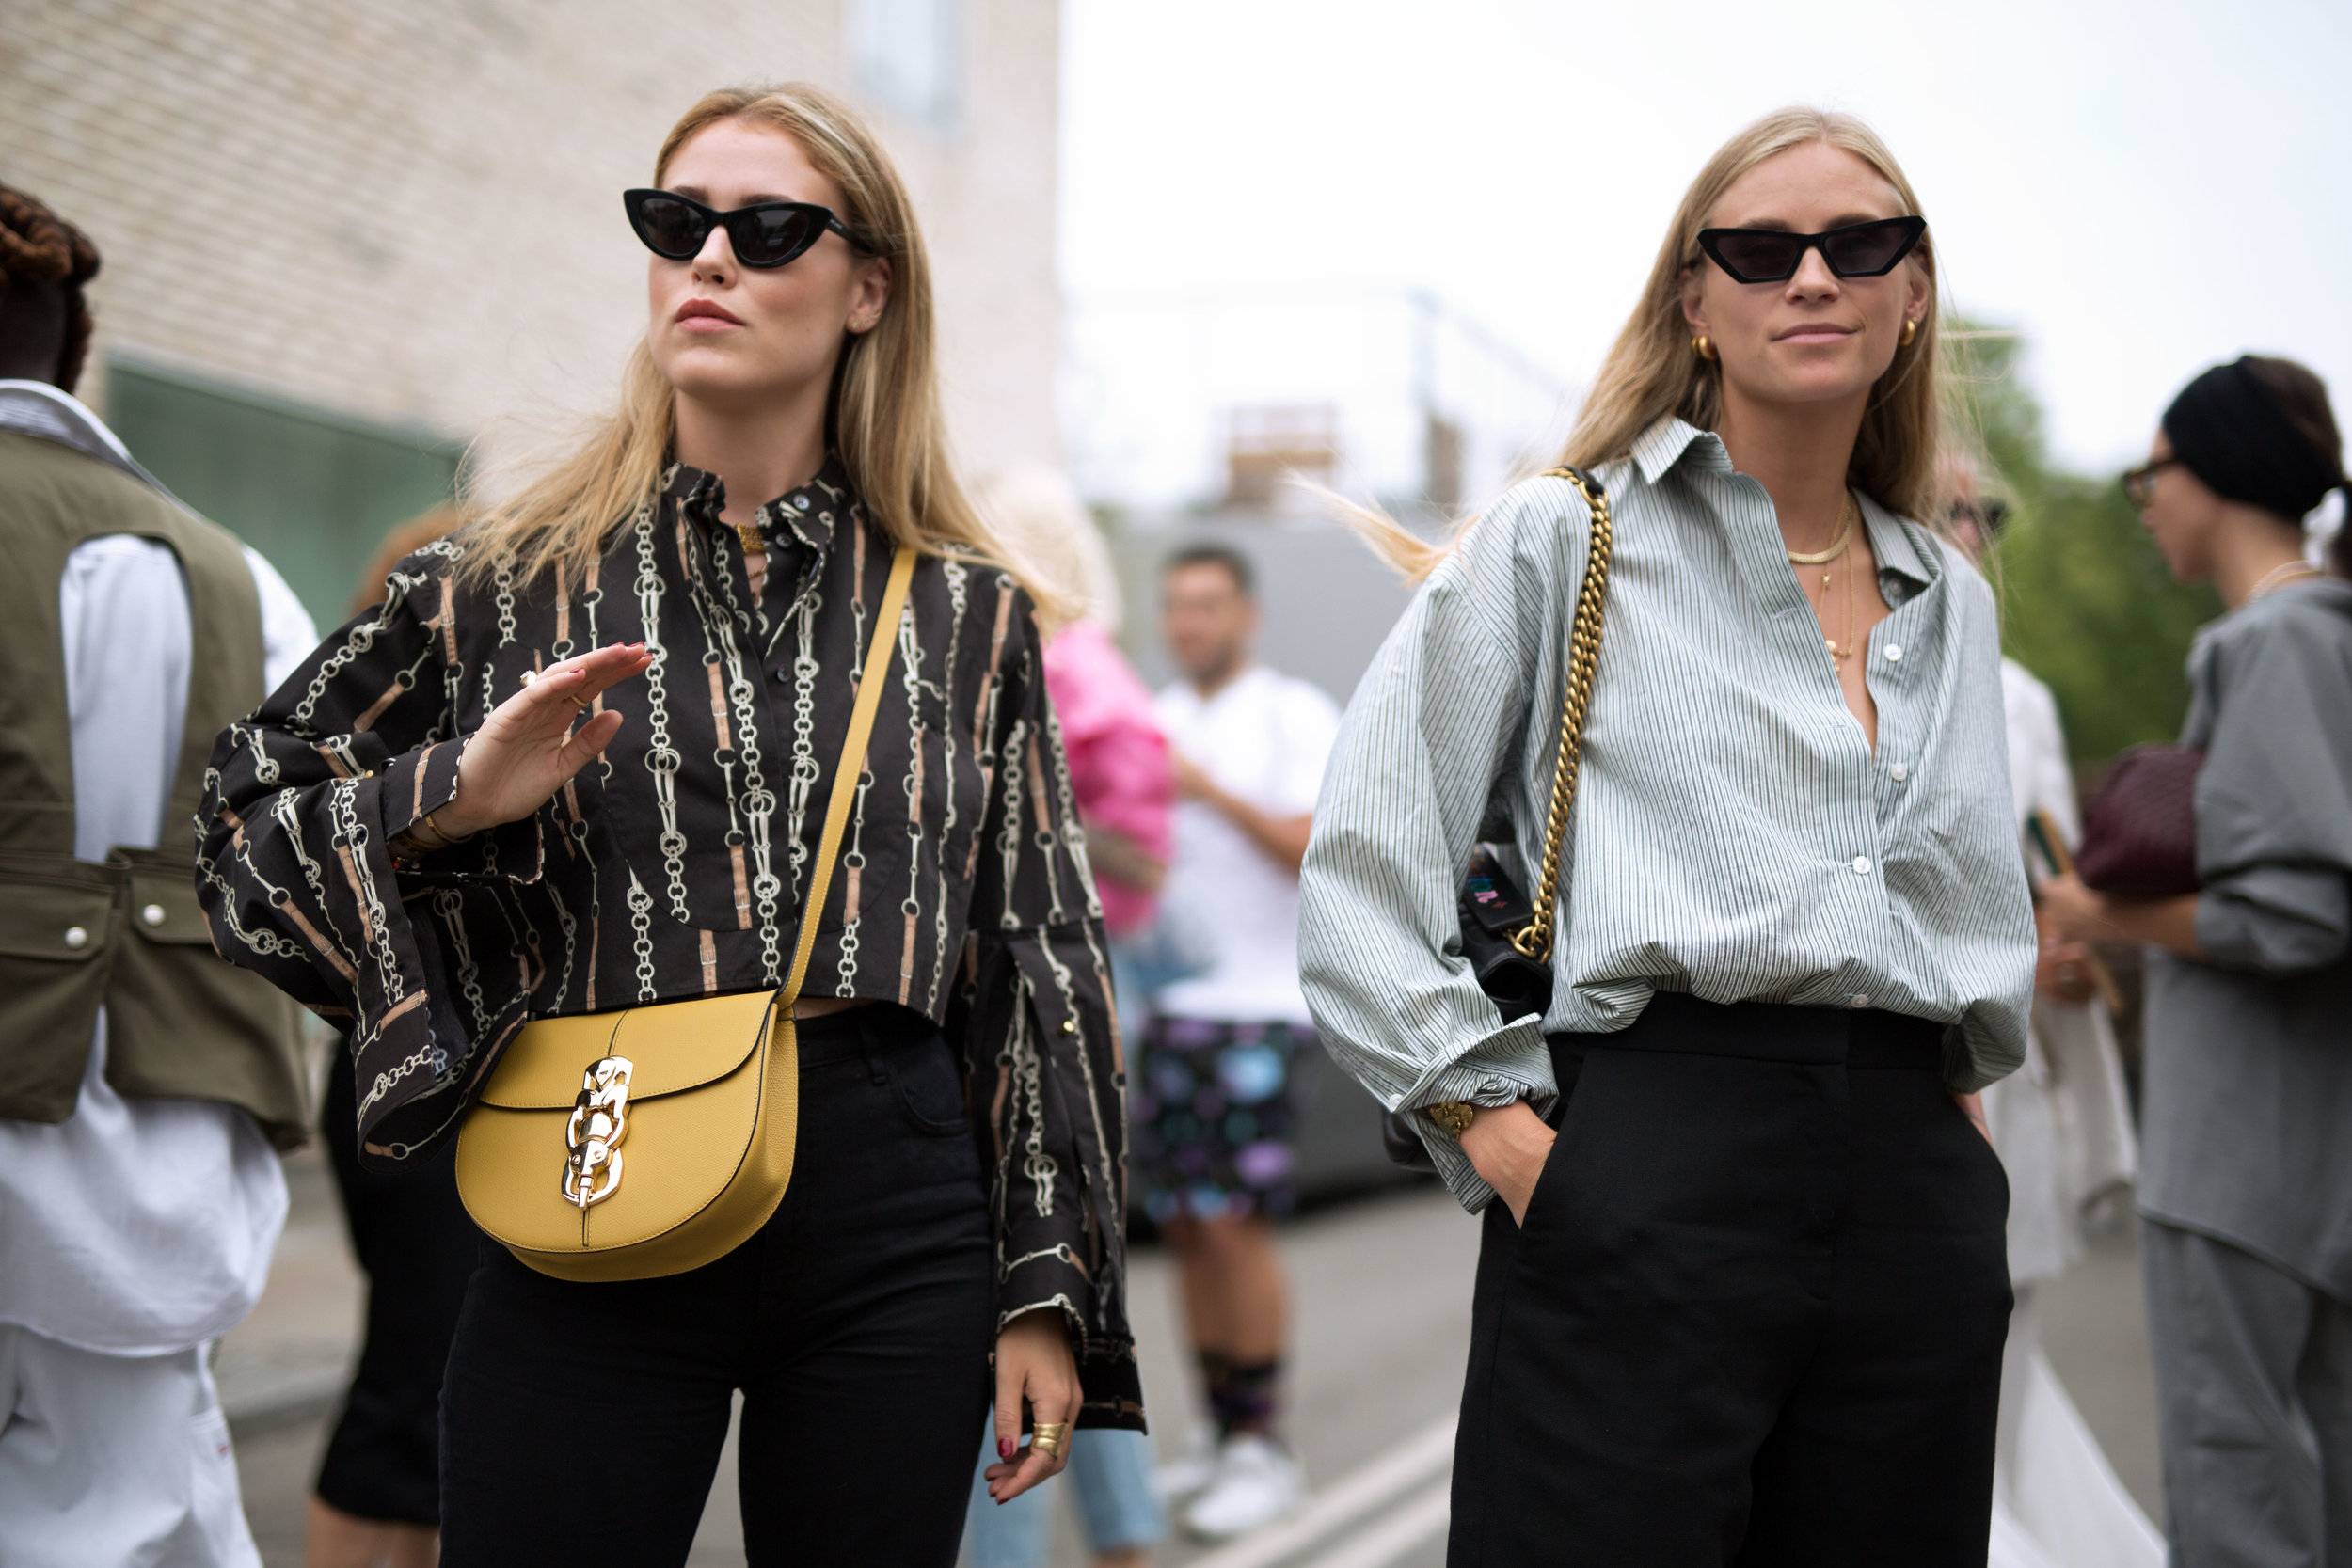 TheStreetland_Copenhagen_Fashion_Week_SS19_17.jpg